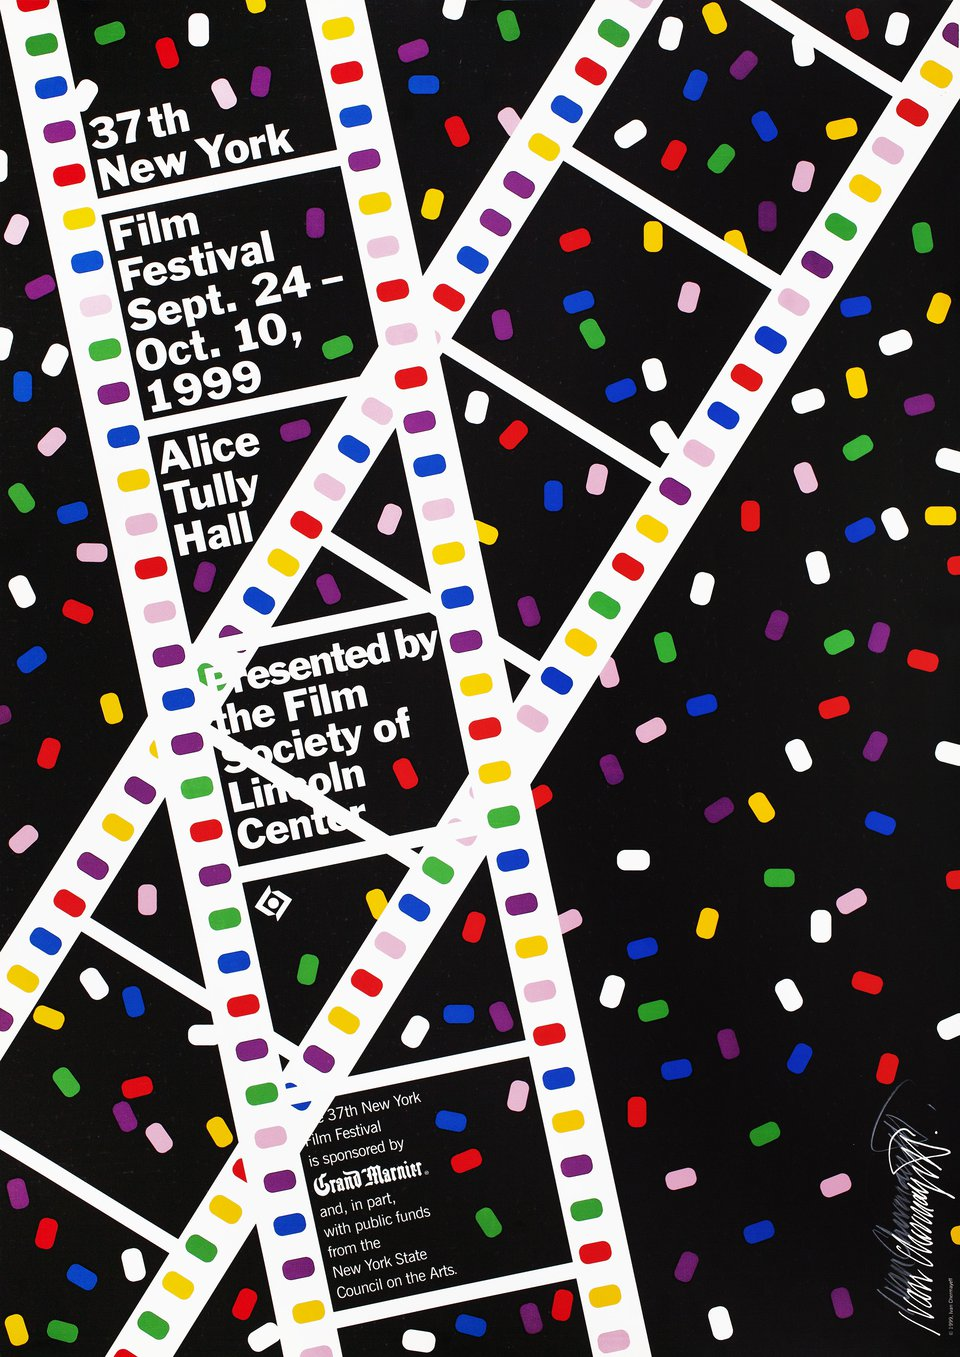 37th New York Film Festival 1999 U.S. A1 Poster Signed